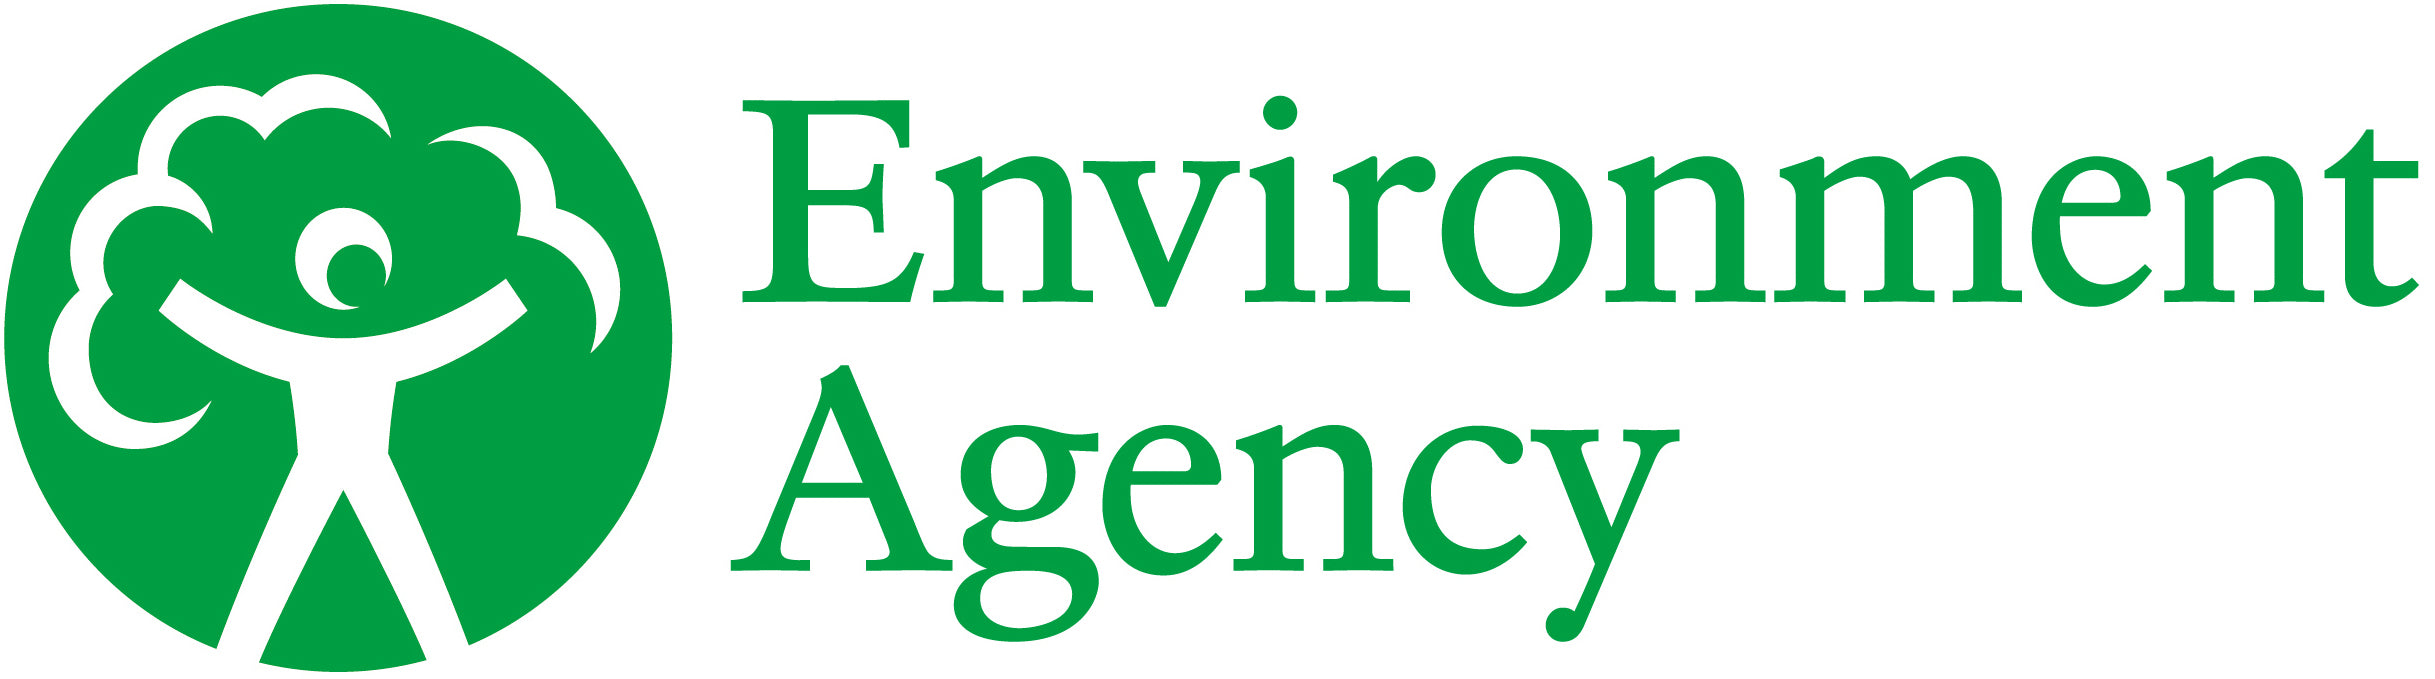 environment-agency-logotype